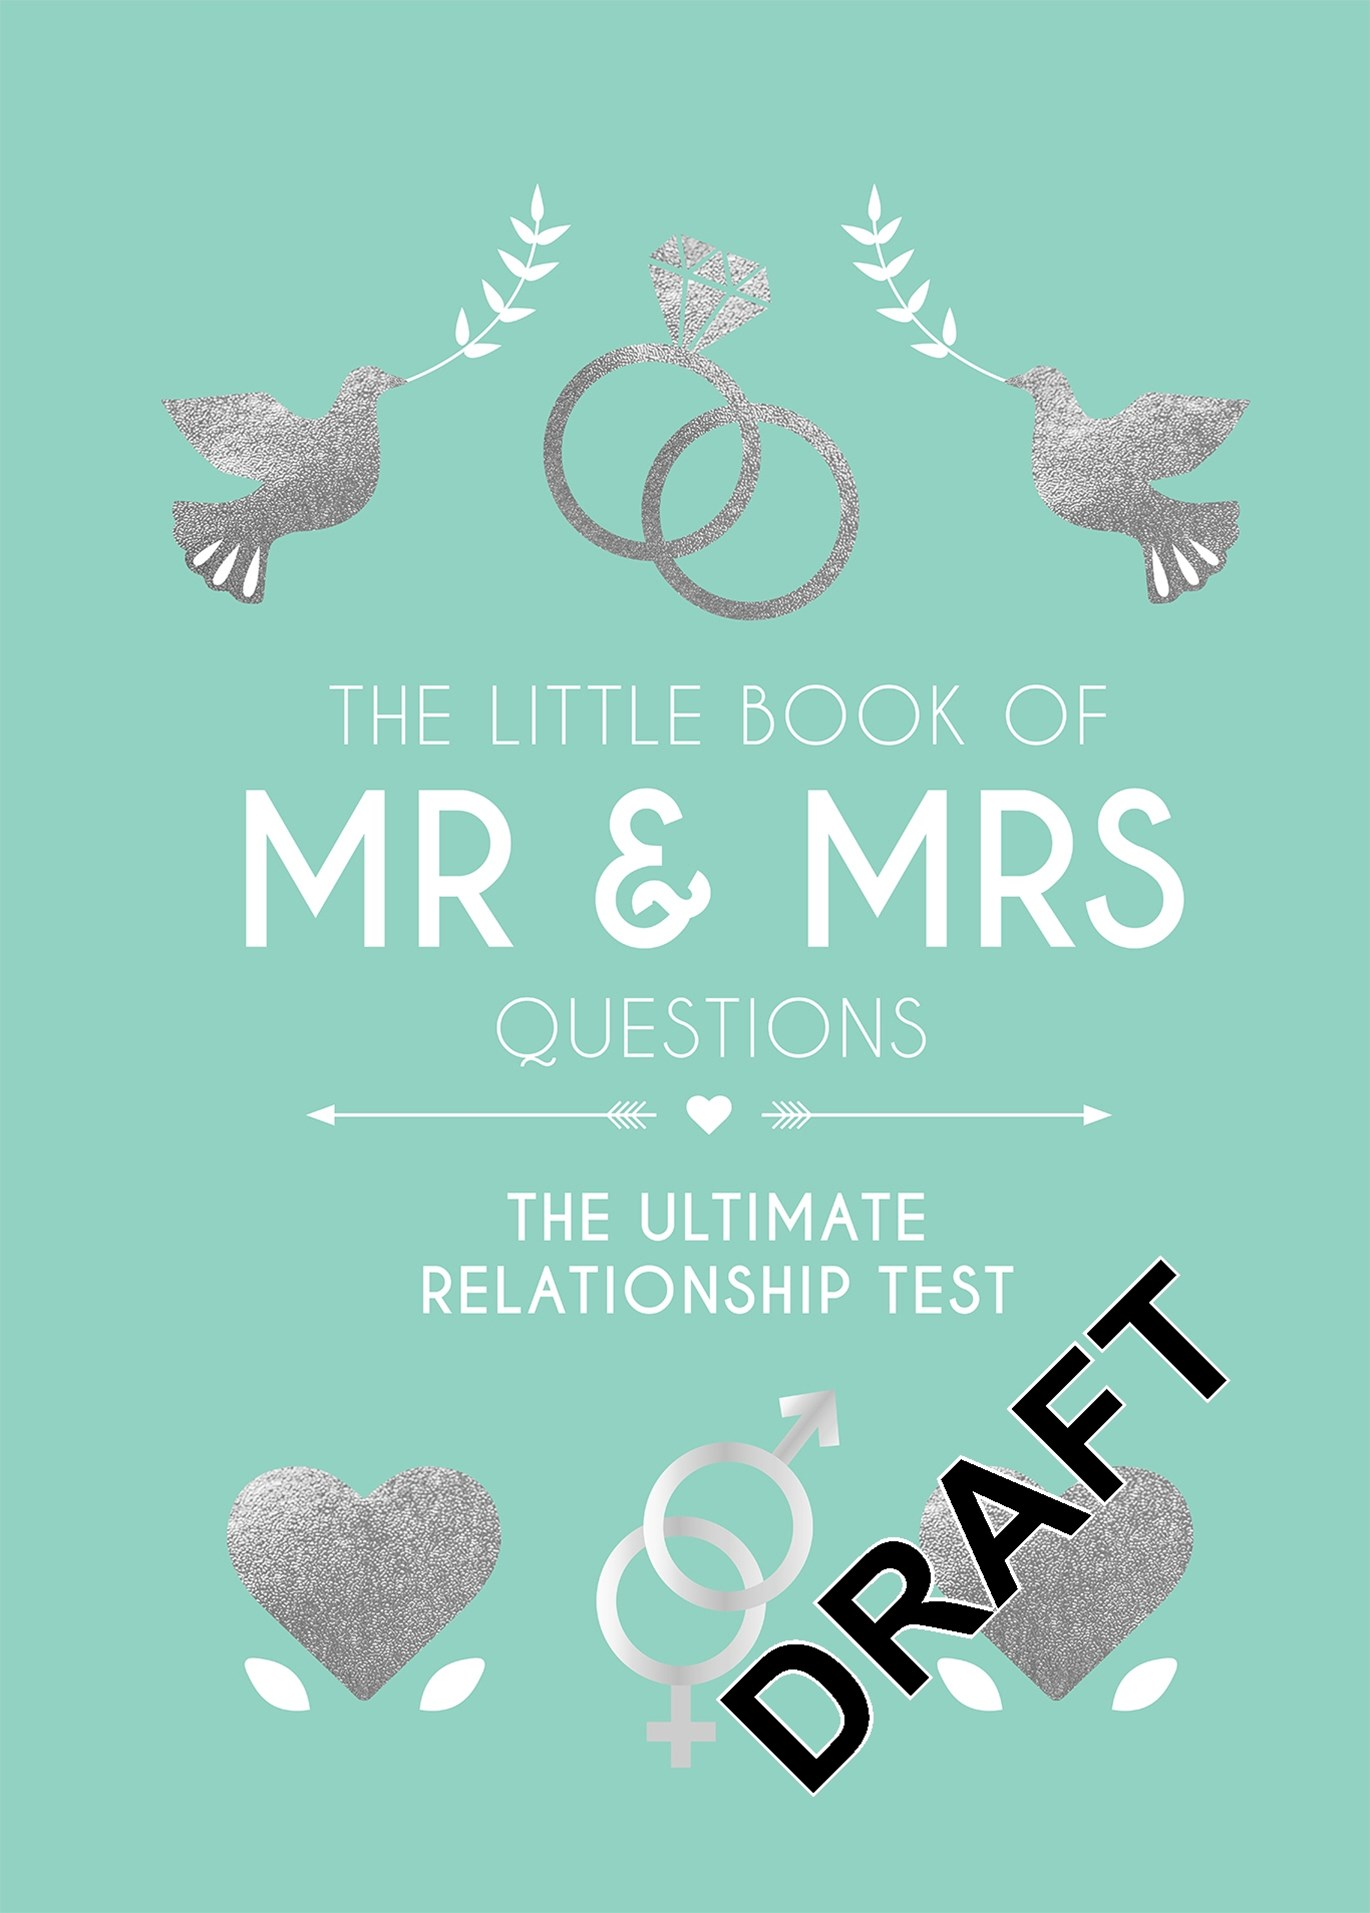 The Little Book of Mr & Mrs Questions: The Ultimate Relationship Test